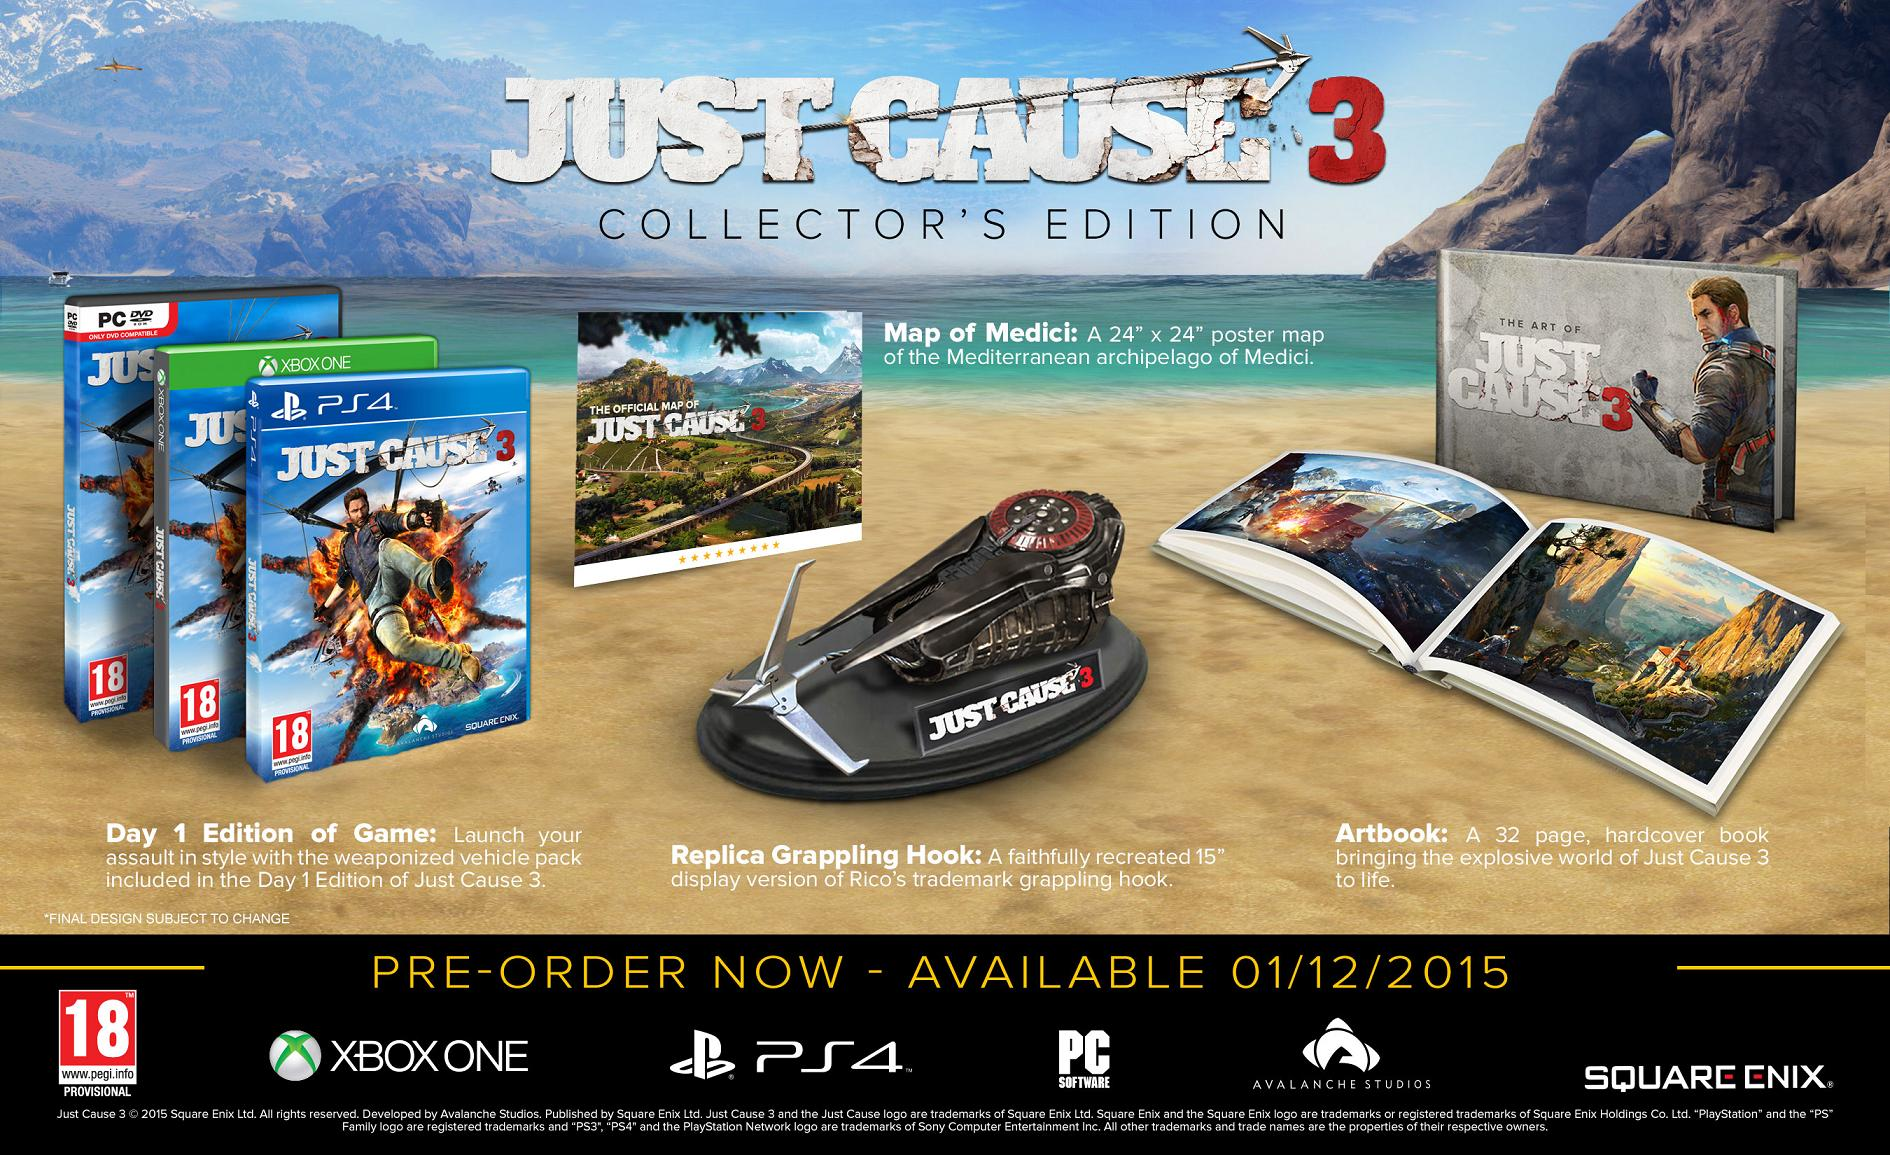 JUST CAUSE 3 COLLECTOR'S EDITION - Xone